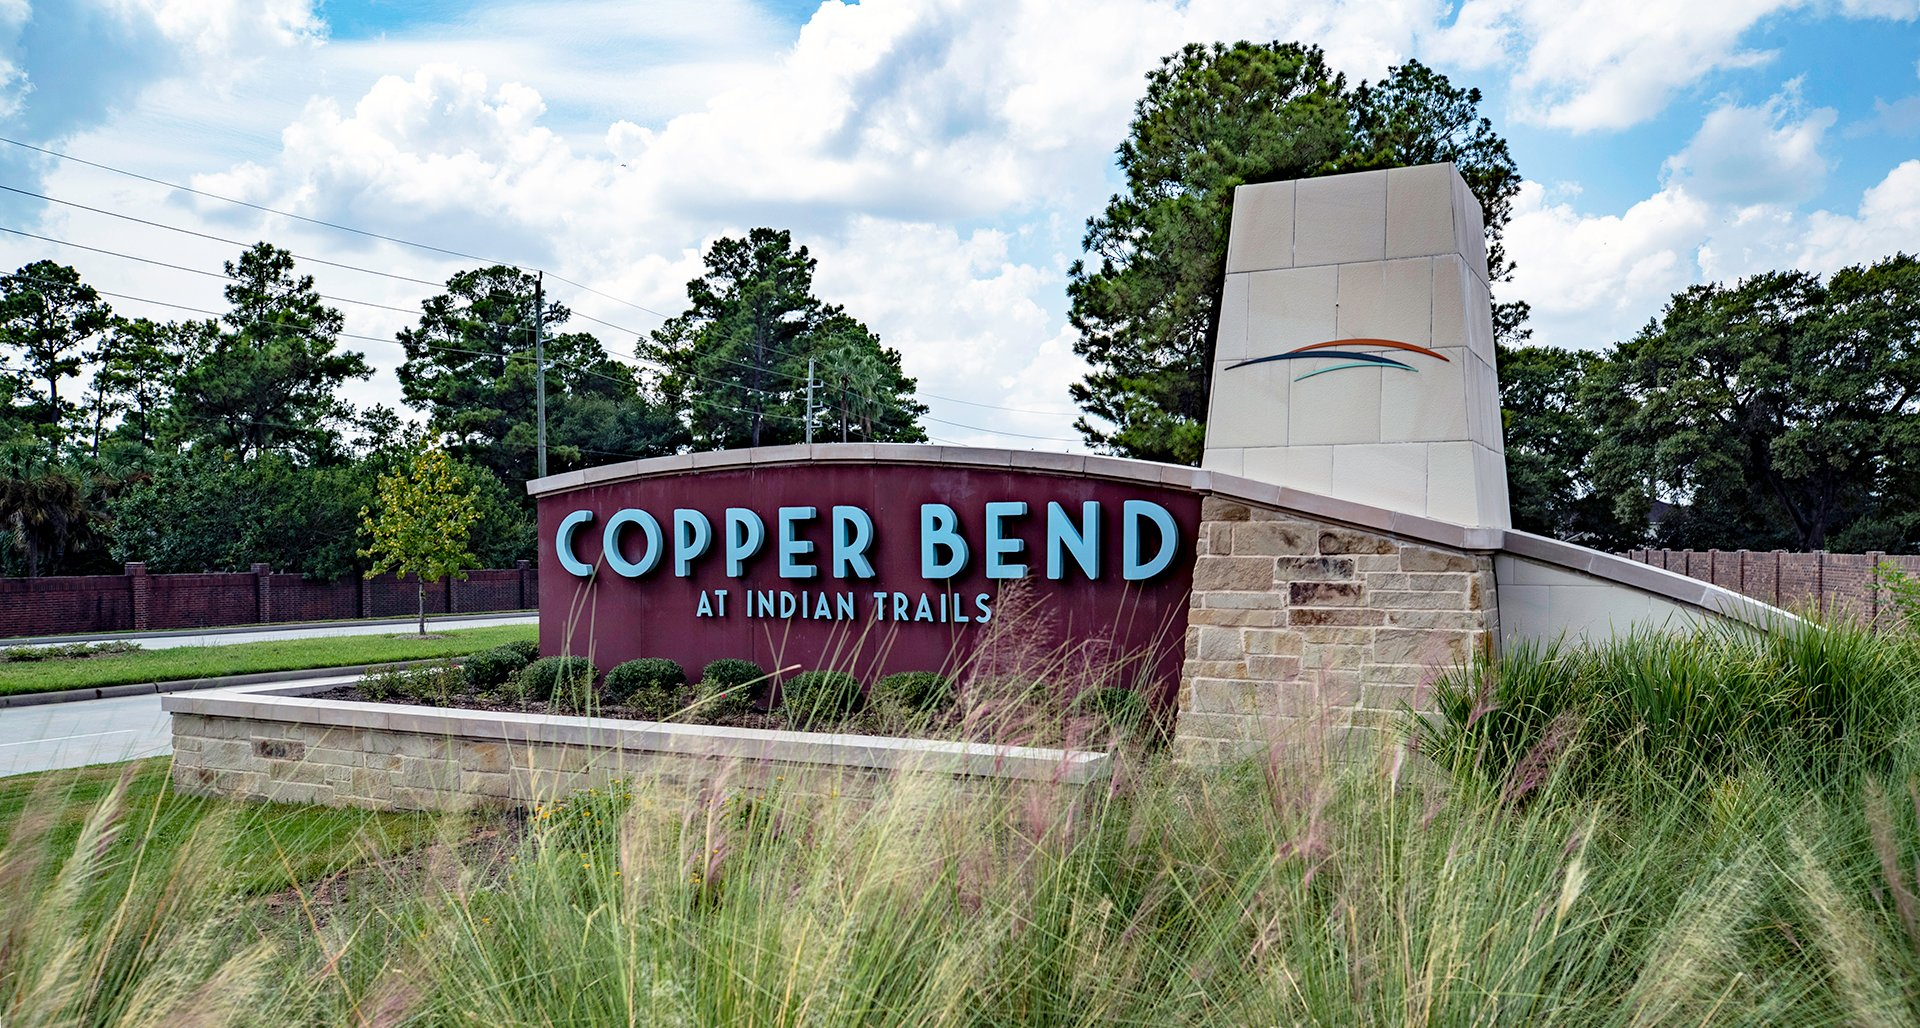 Copper Bend at Indian Trails - Costello Engineering Project for residential+development, drainage, surveying, land+planning, landscape+architecture, land+planning+and+landscape+architecture,